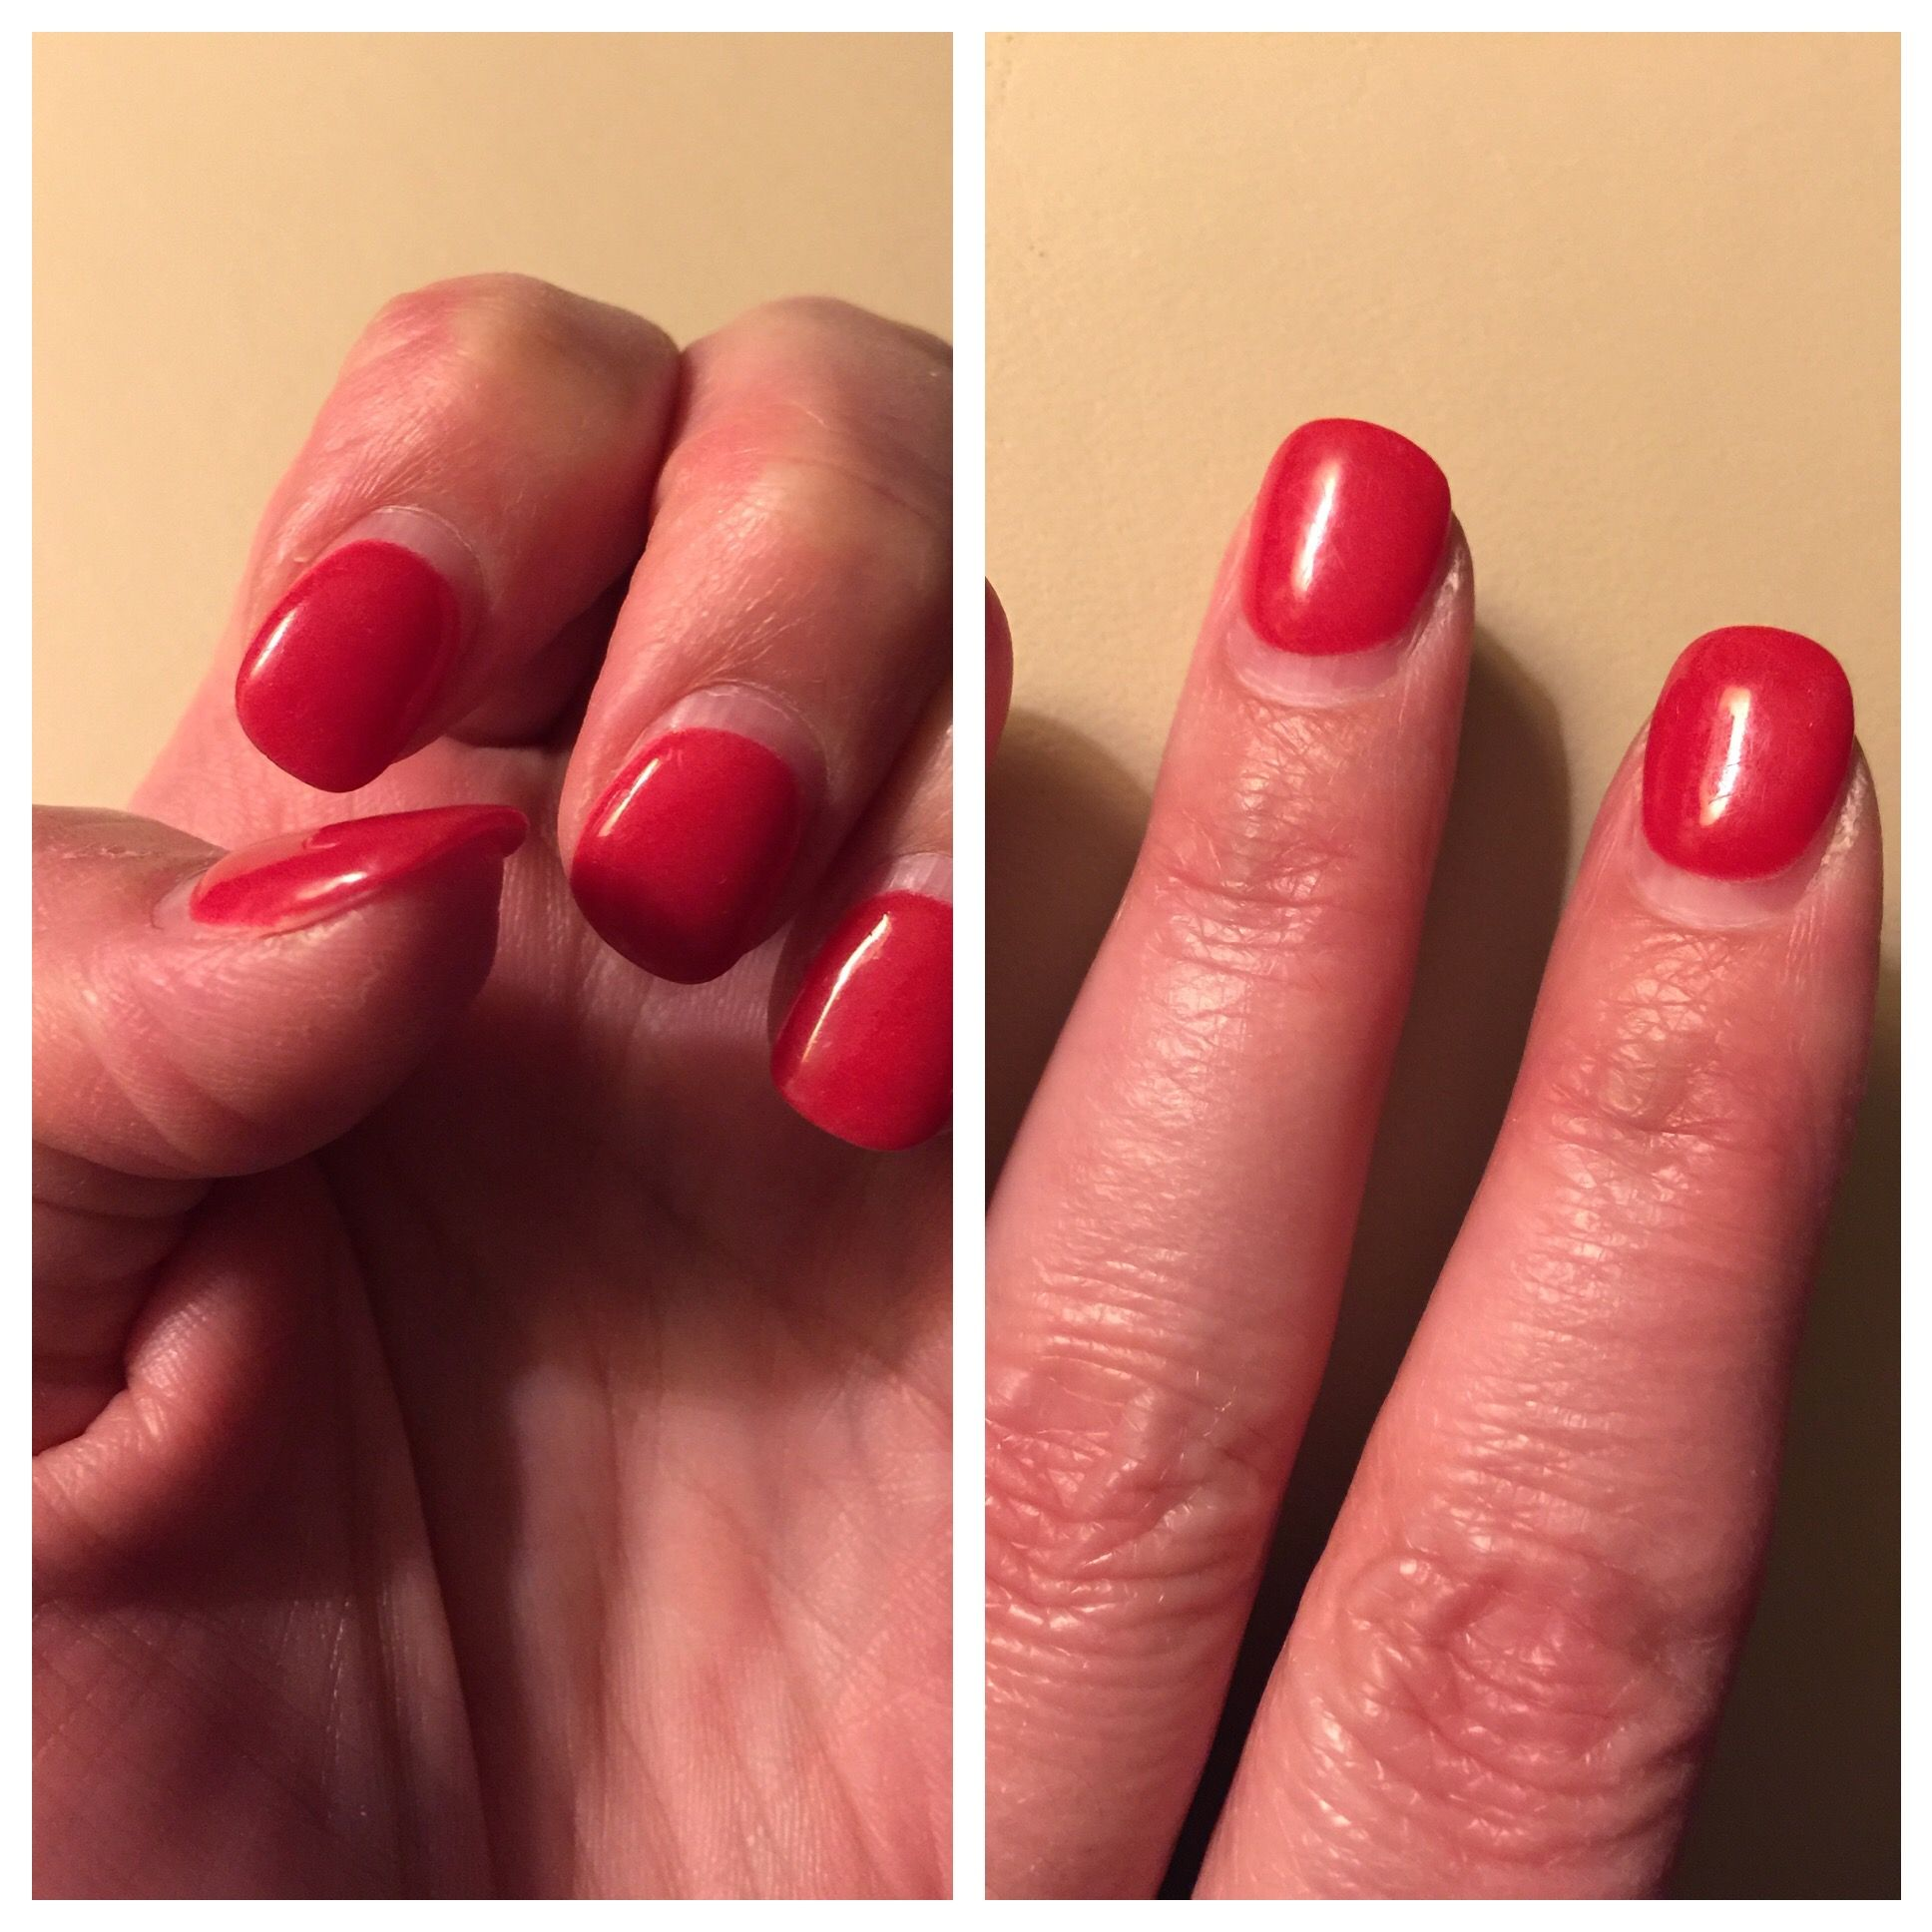 NexGen nails after four weeks. Still look good and still very strong ...